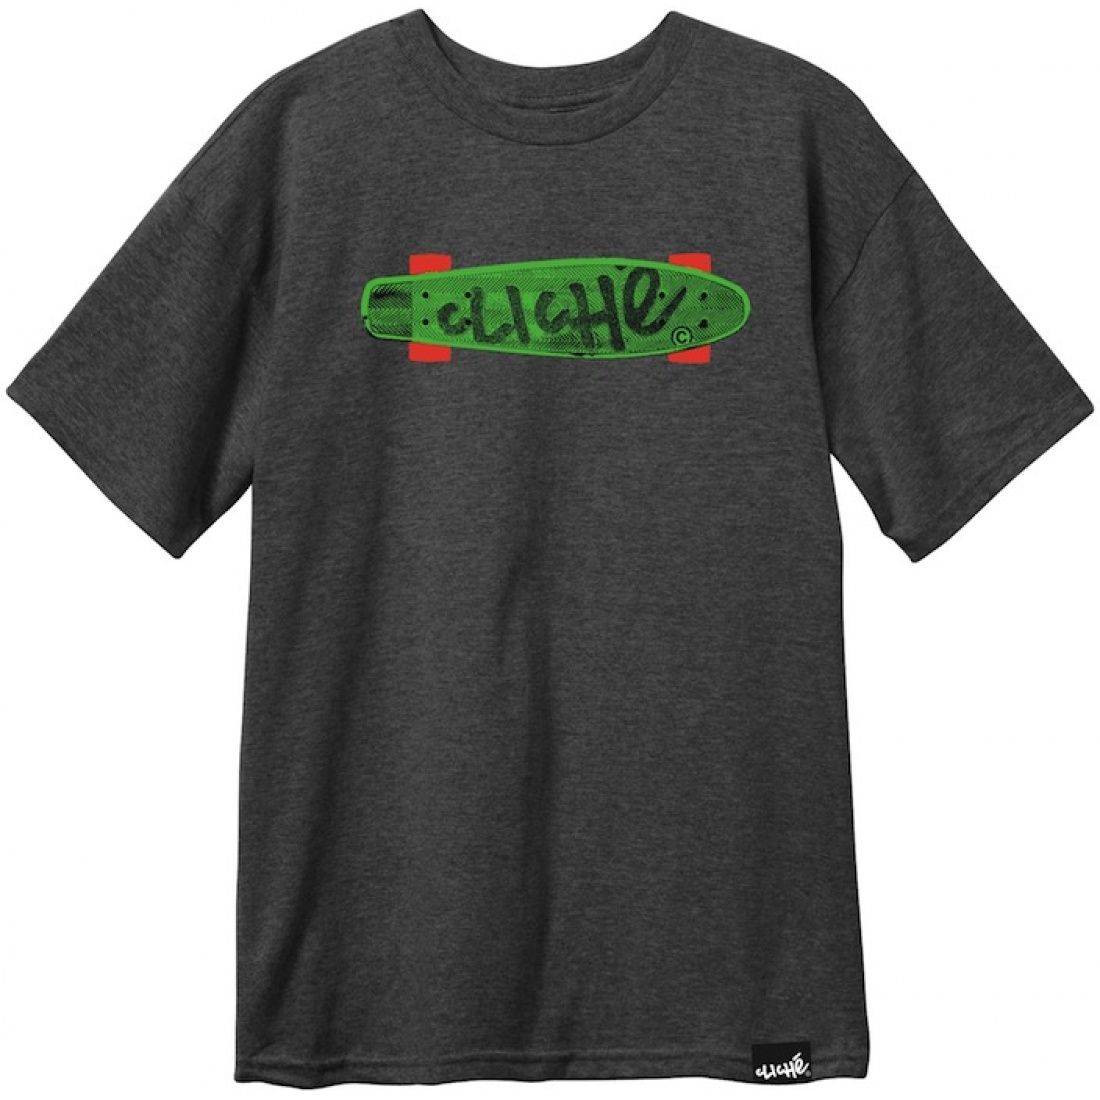 CLE-Trocadero Charcoal Heather Tee